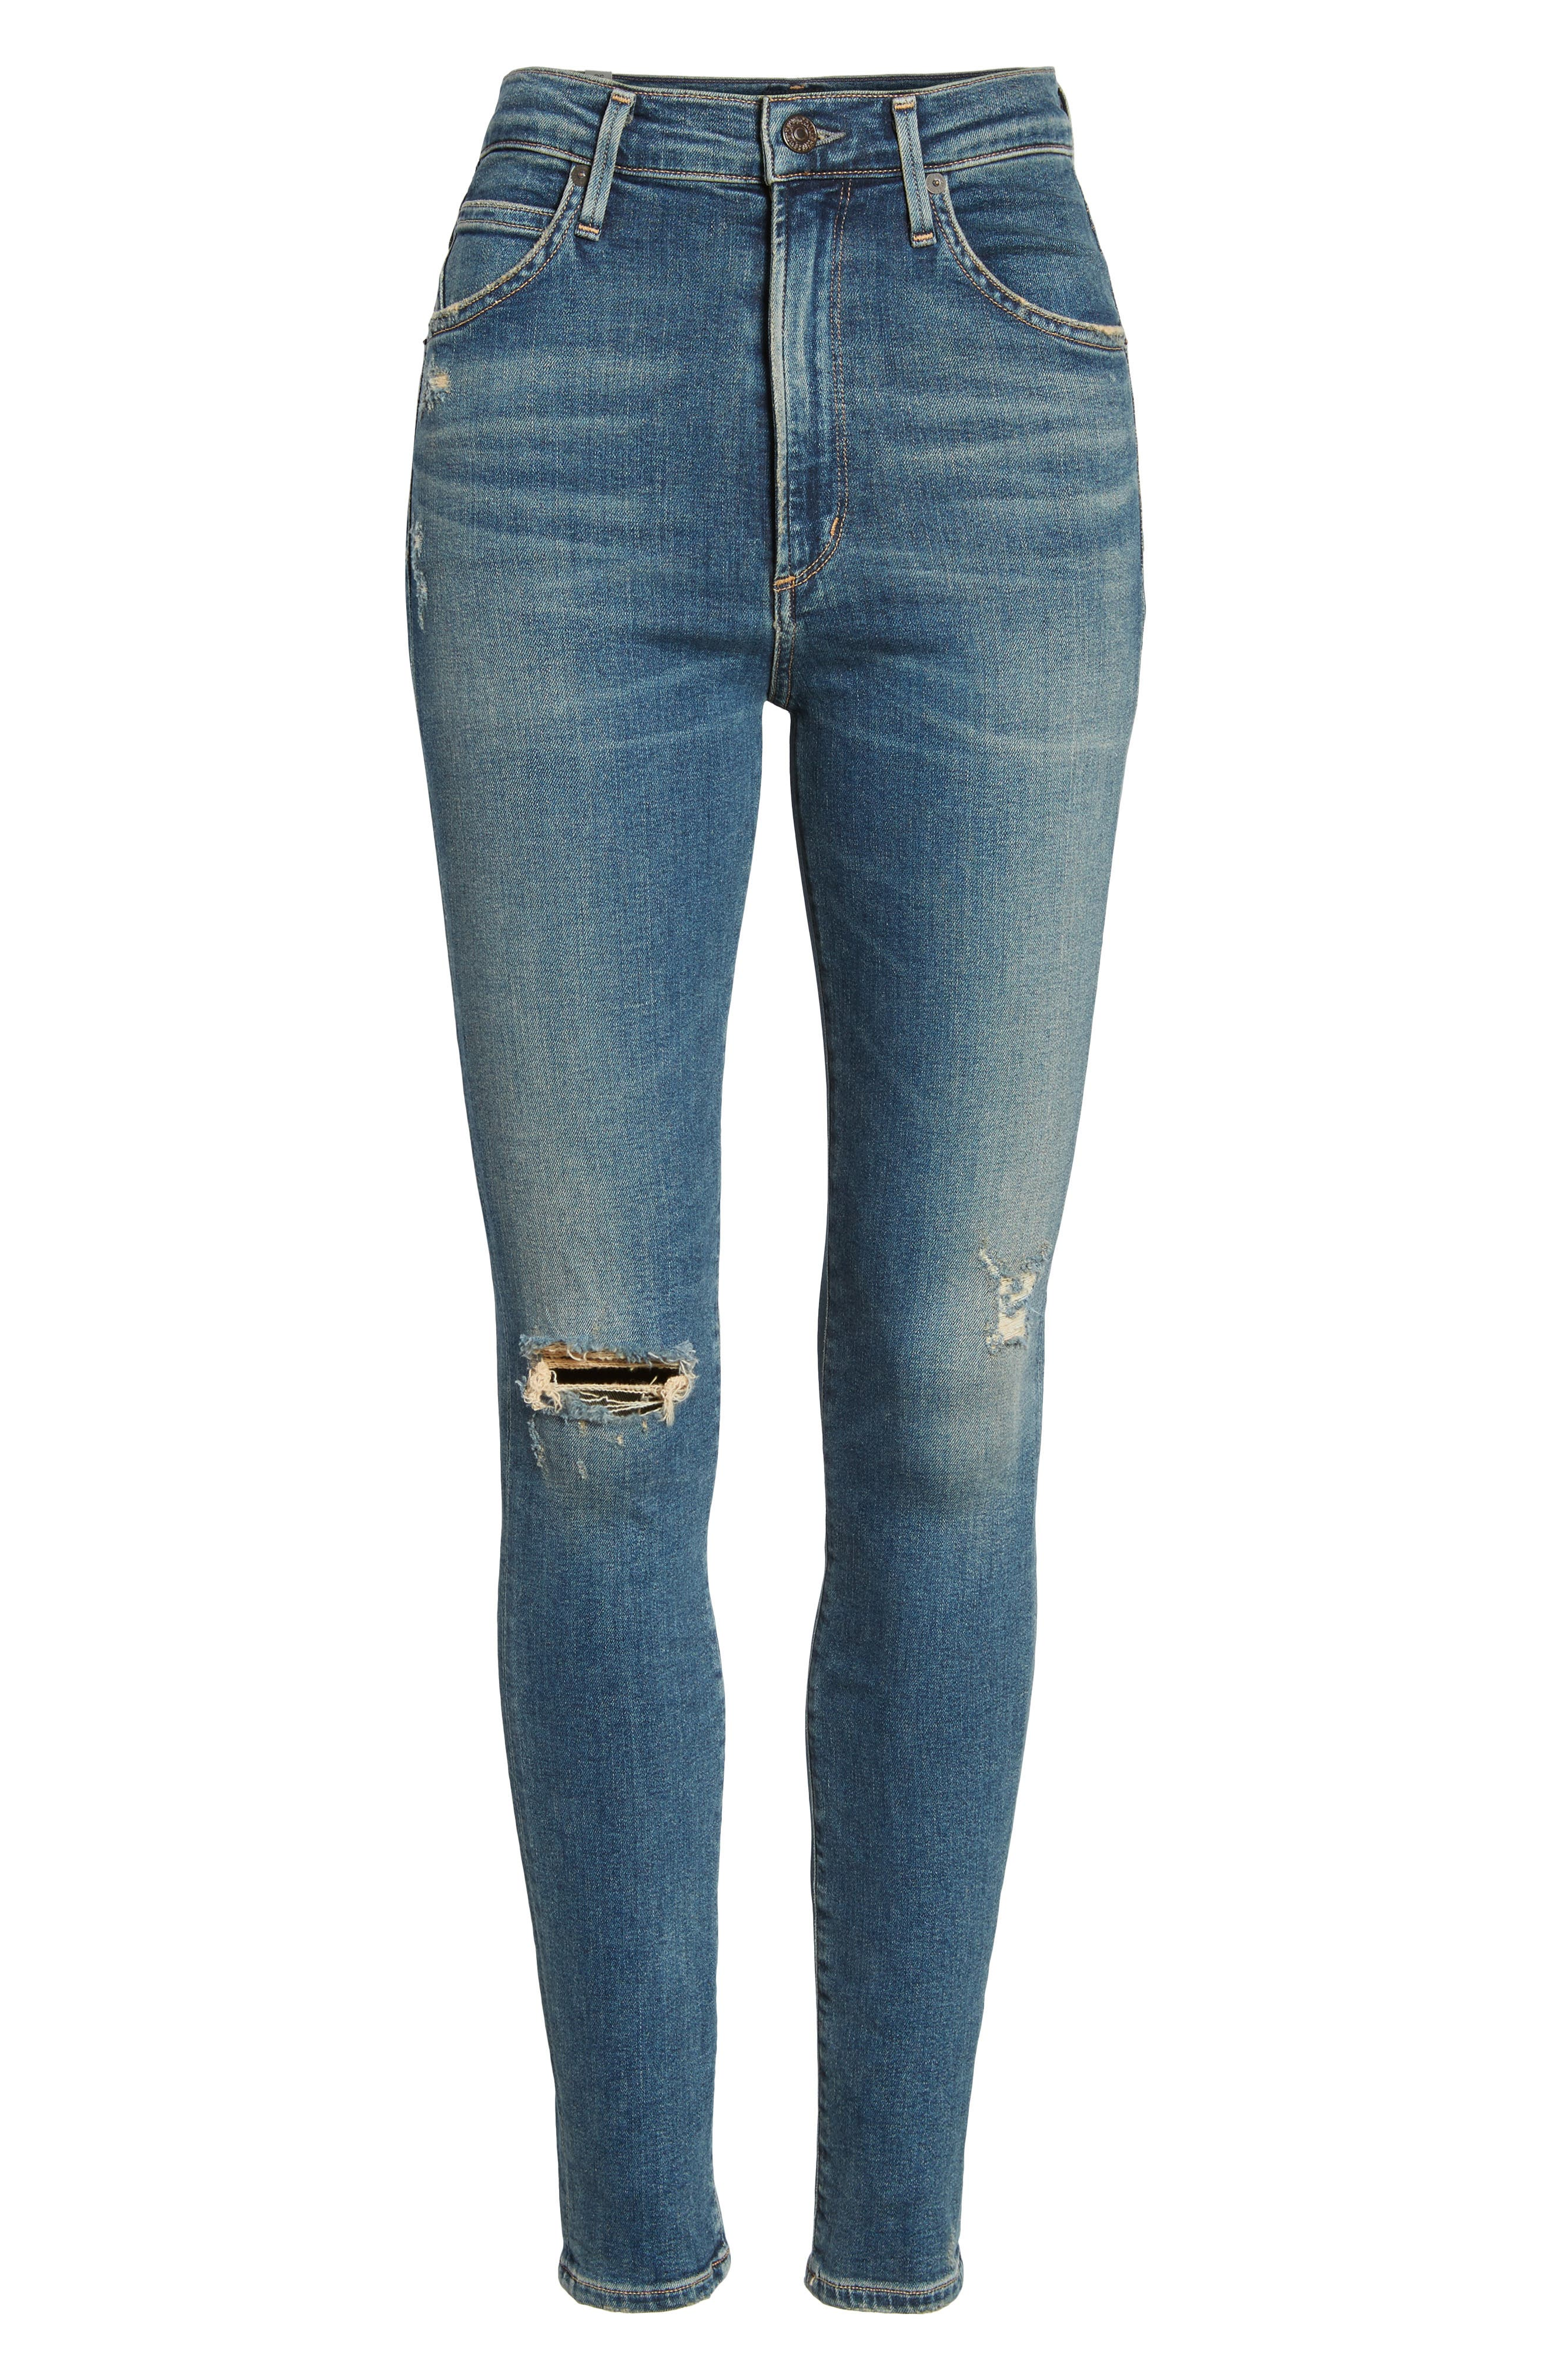 Chrissy High Waist Skinny Jeans,                             Alternate thumbnail 7, color,                             Roulette